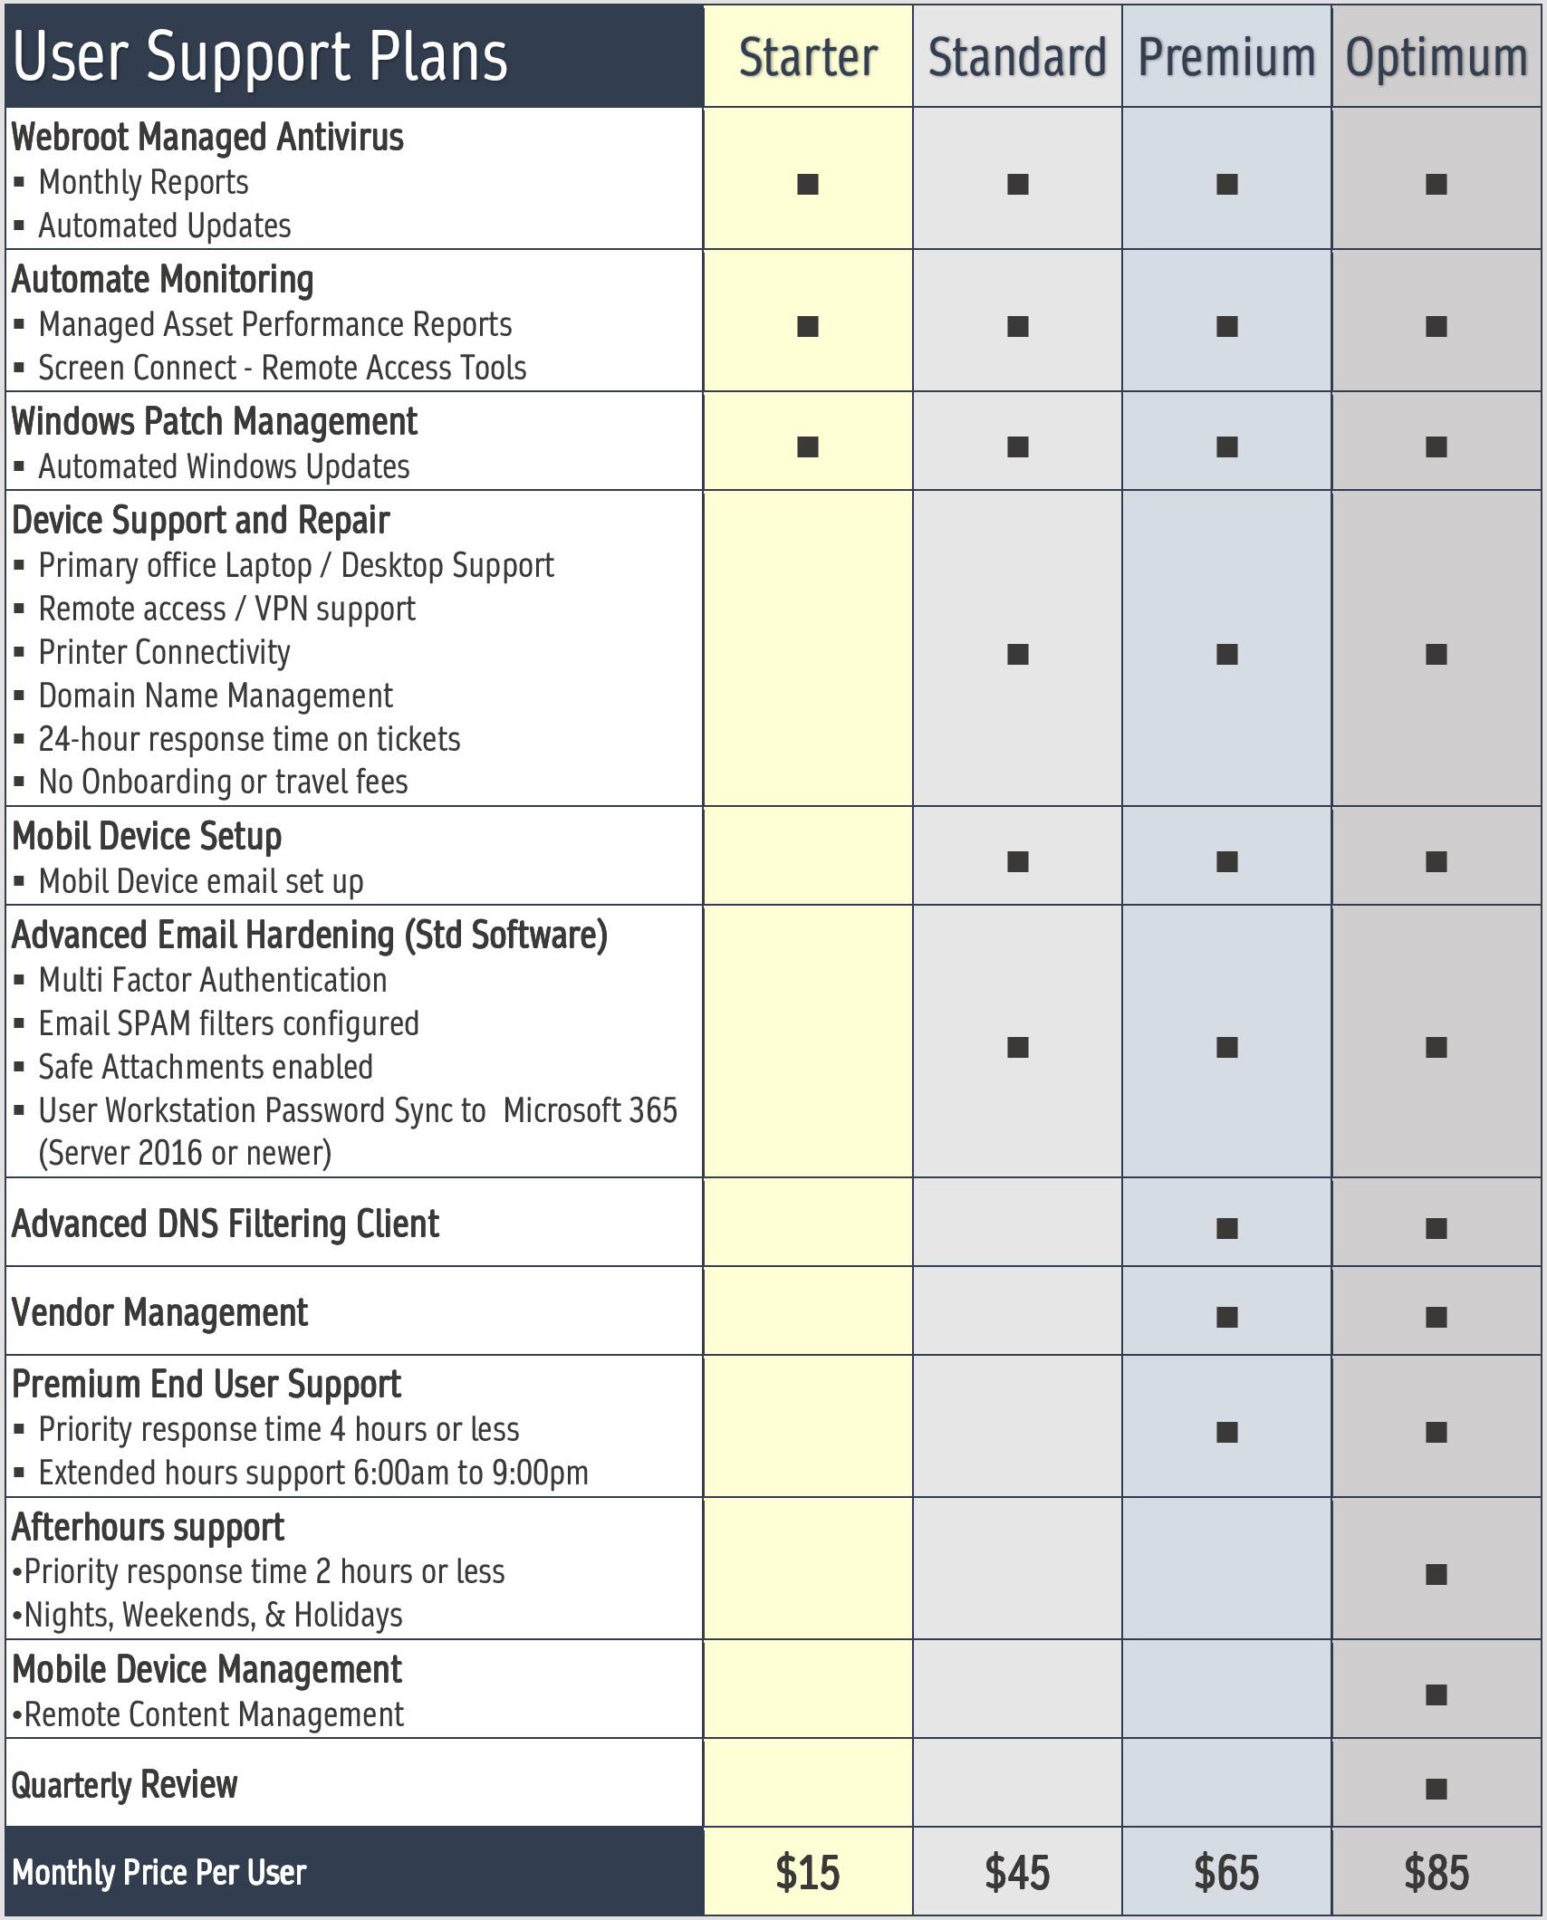 User Support/Workstation MSP Plans